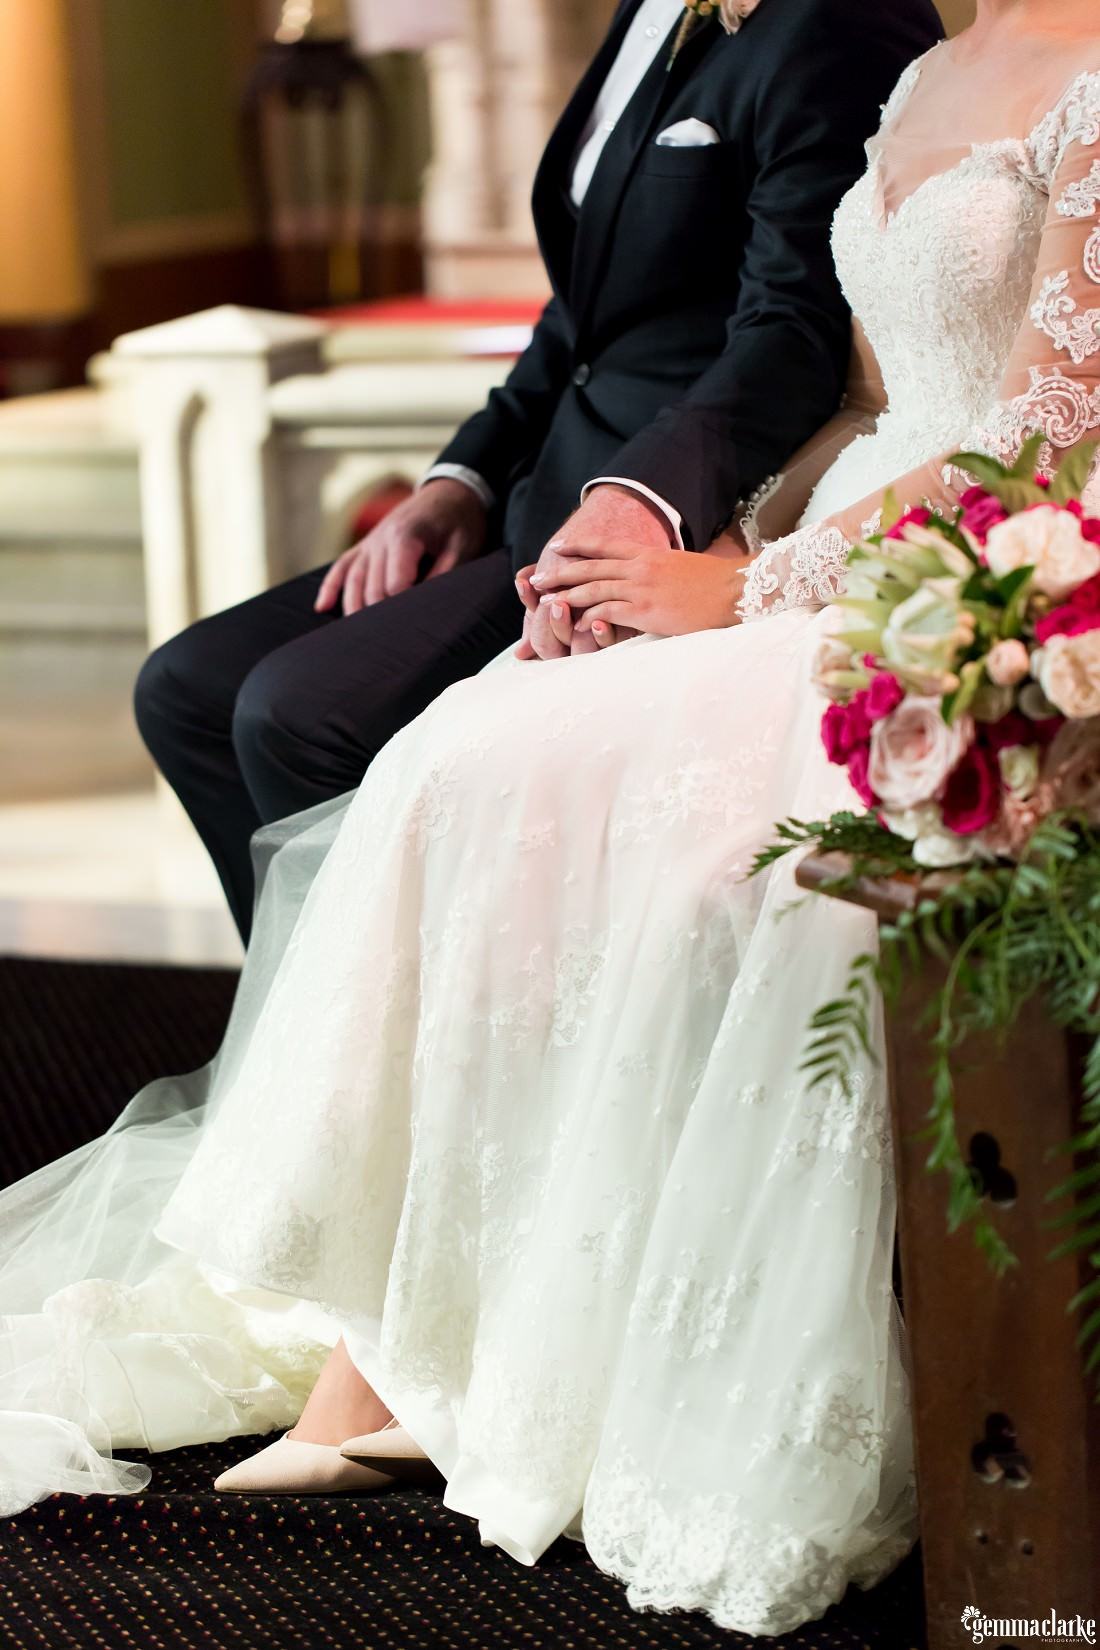 A closeup of a bride and groom holding hands while seated in a church